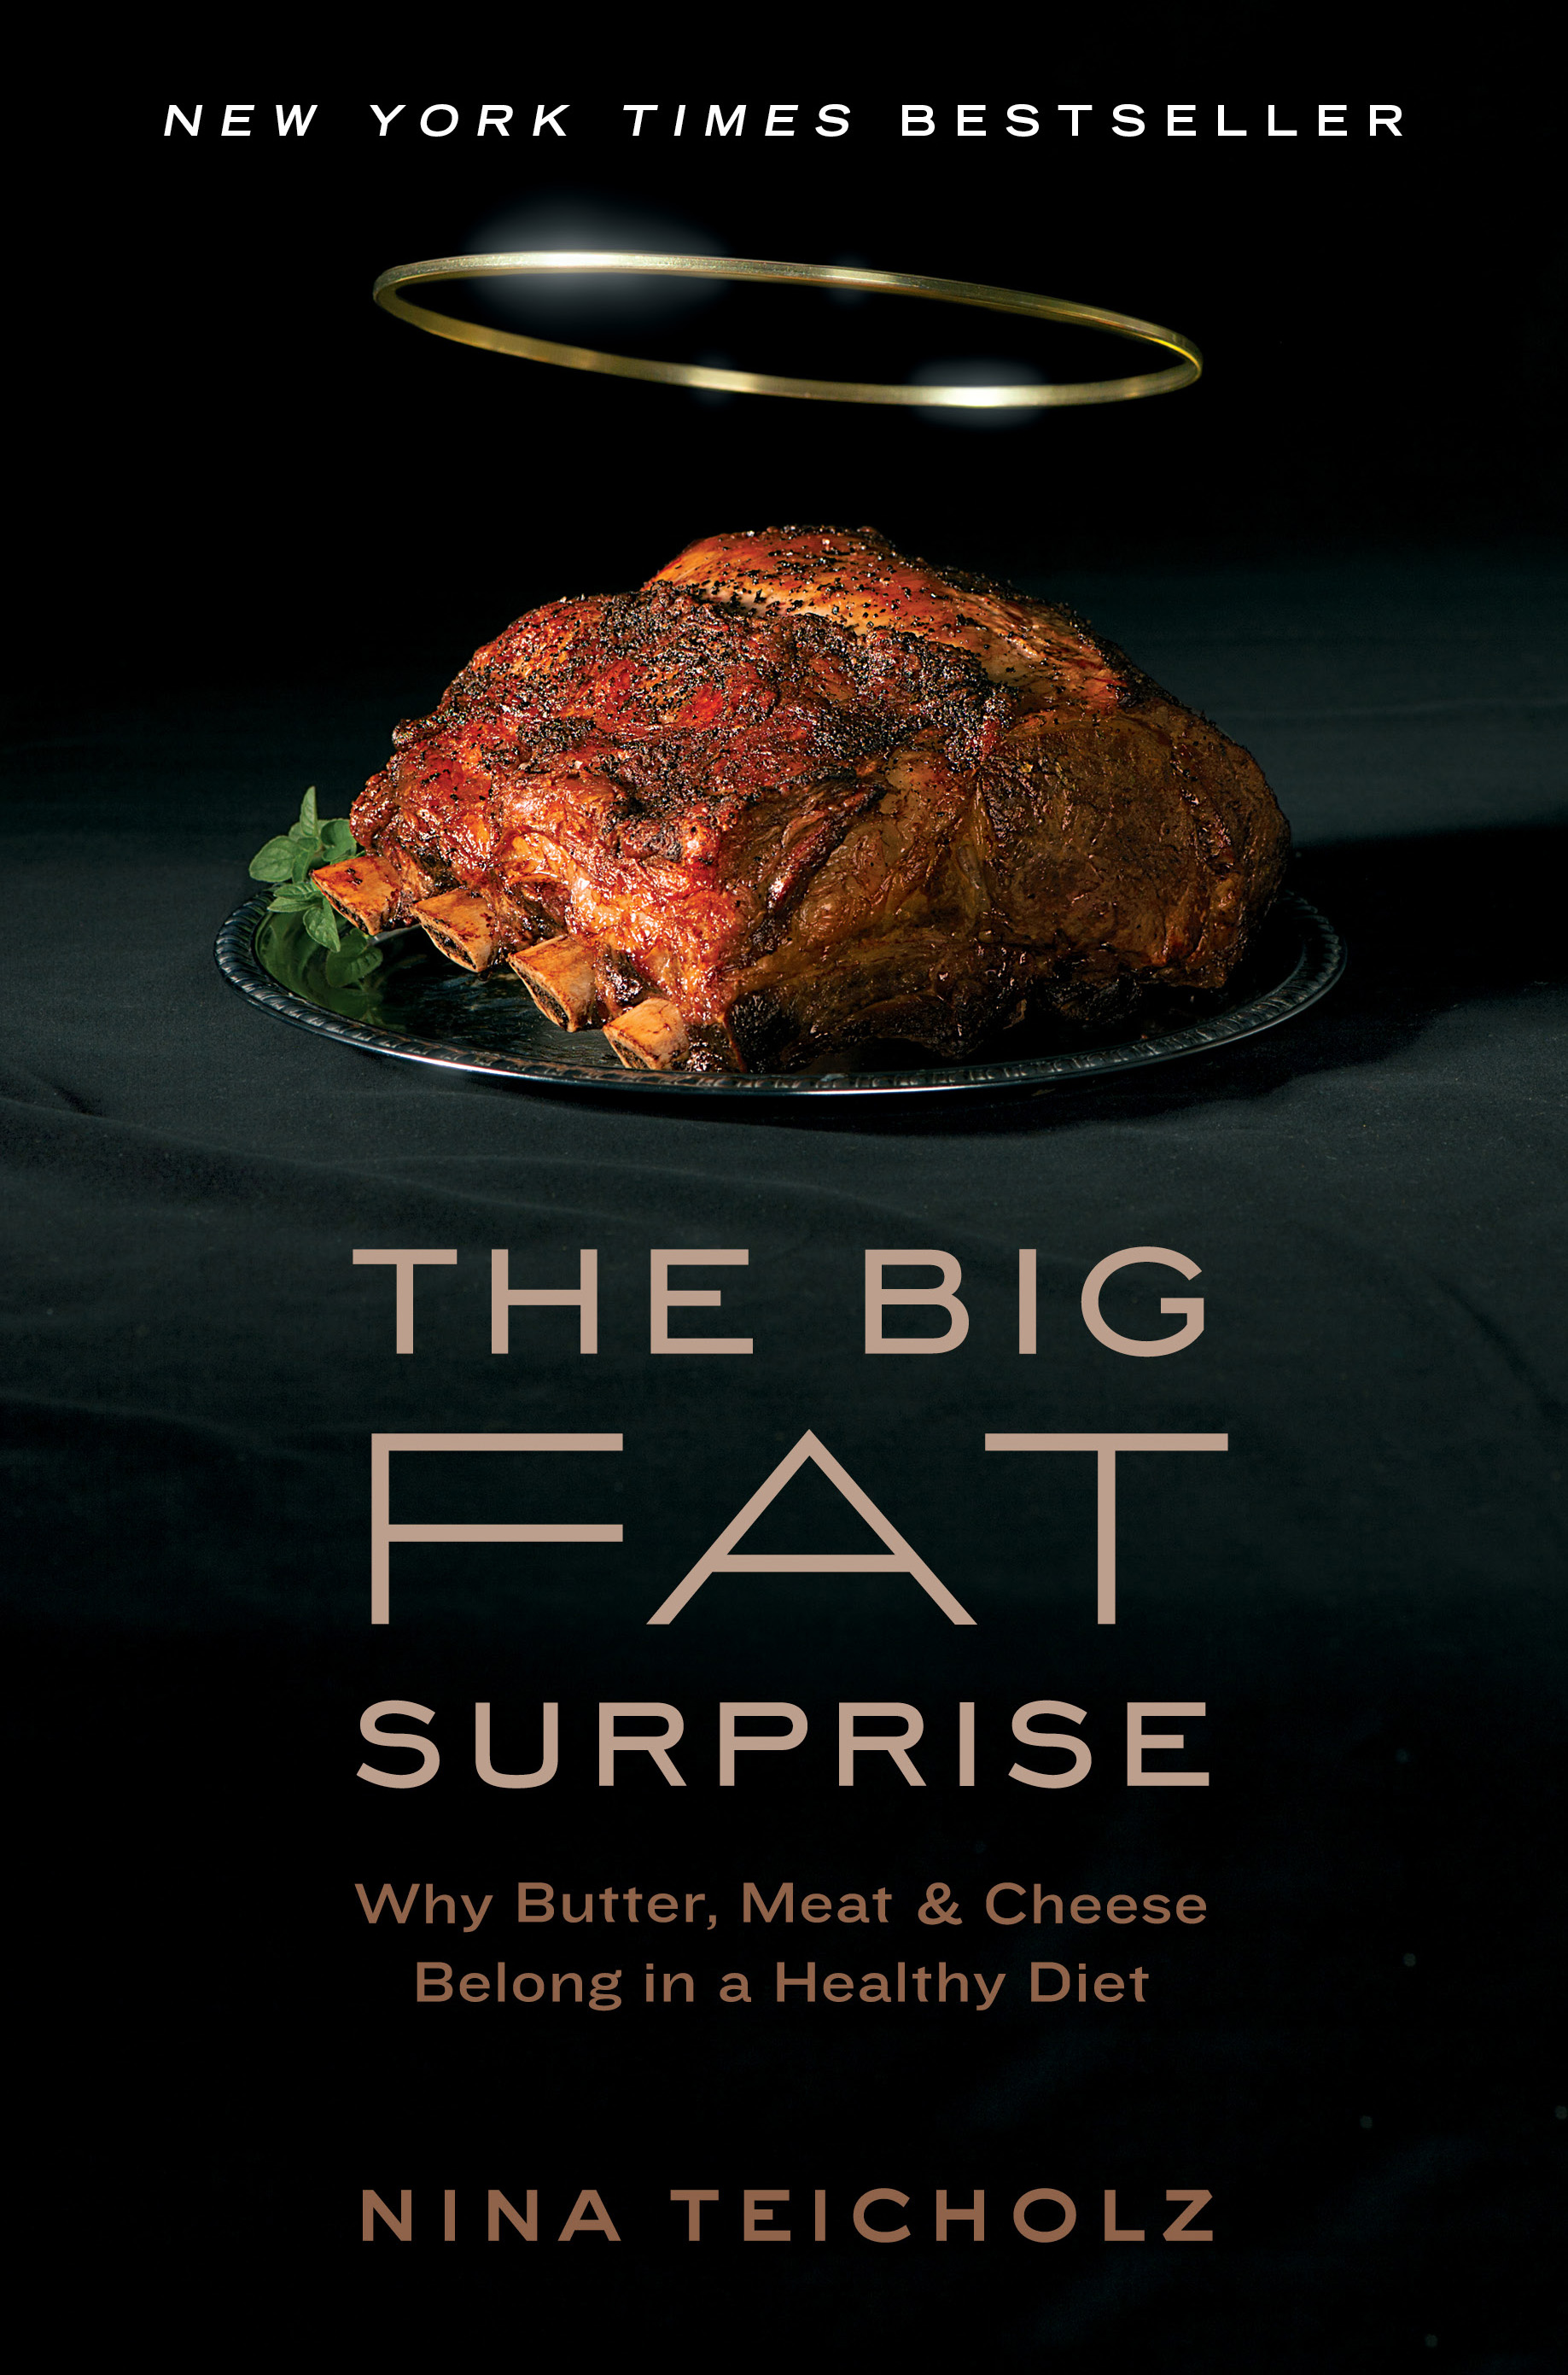 The Big Fat Surprise - If you have ever found yourself on the low fat train, believing myths like egg yolks contribute to heart disease, or want to know more about how politics influence the government food recommendations, you NEED to read this. Nina Teicholz is not a nutritionist with an agenda, but an investigative journalist whose curiosity led her to dig into the potent question: where did Americas fear of fat come from? Who even decided those Government Nutritional Guidelines? Is their bias involved? Spoiler alert…juicy answers inside.Buy Here!